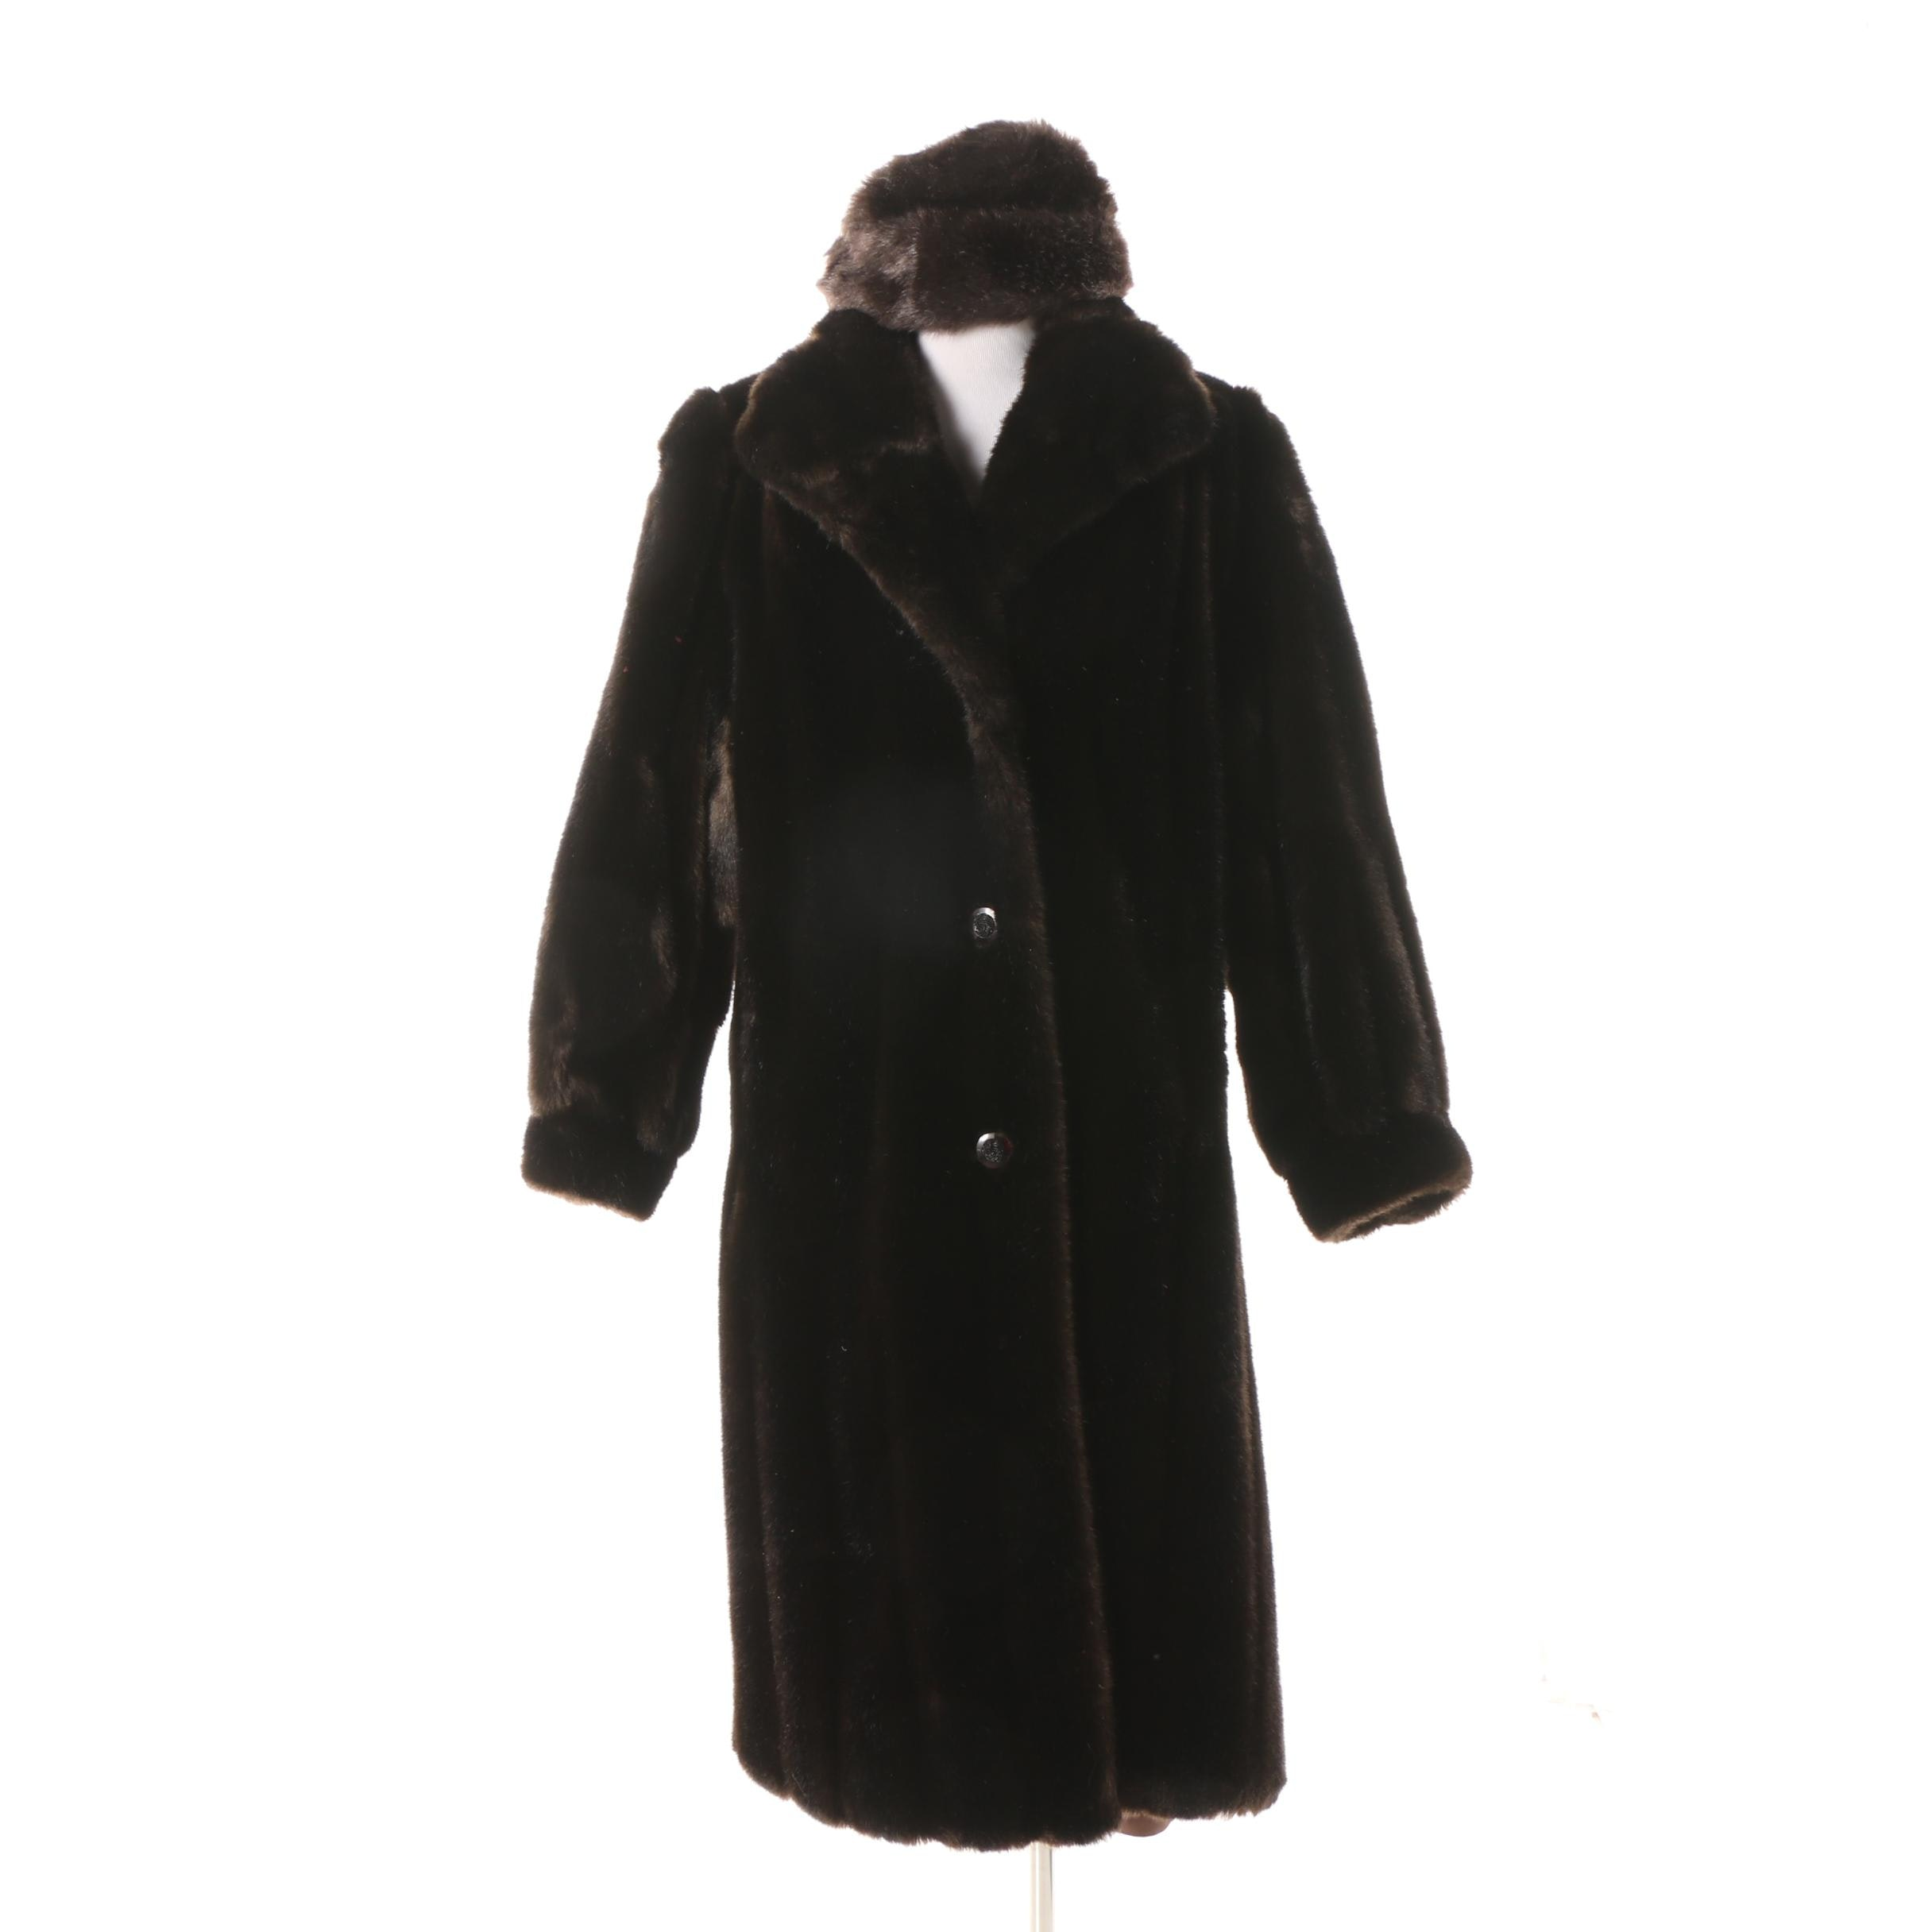 Women's Circa 1960s Vintage Tissavel Brown Faux Fur Coat with Matching Hat